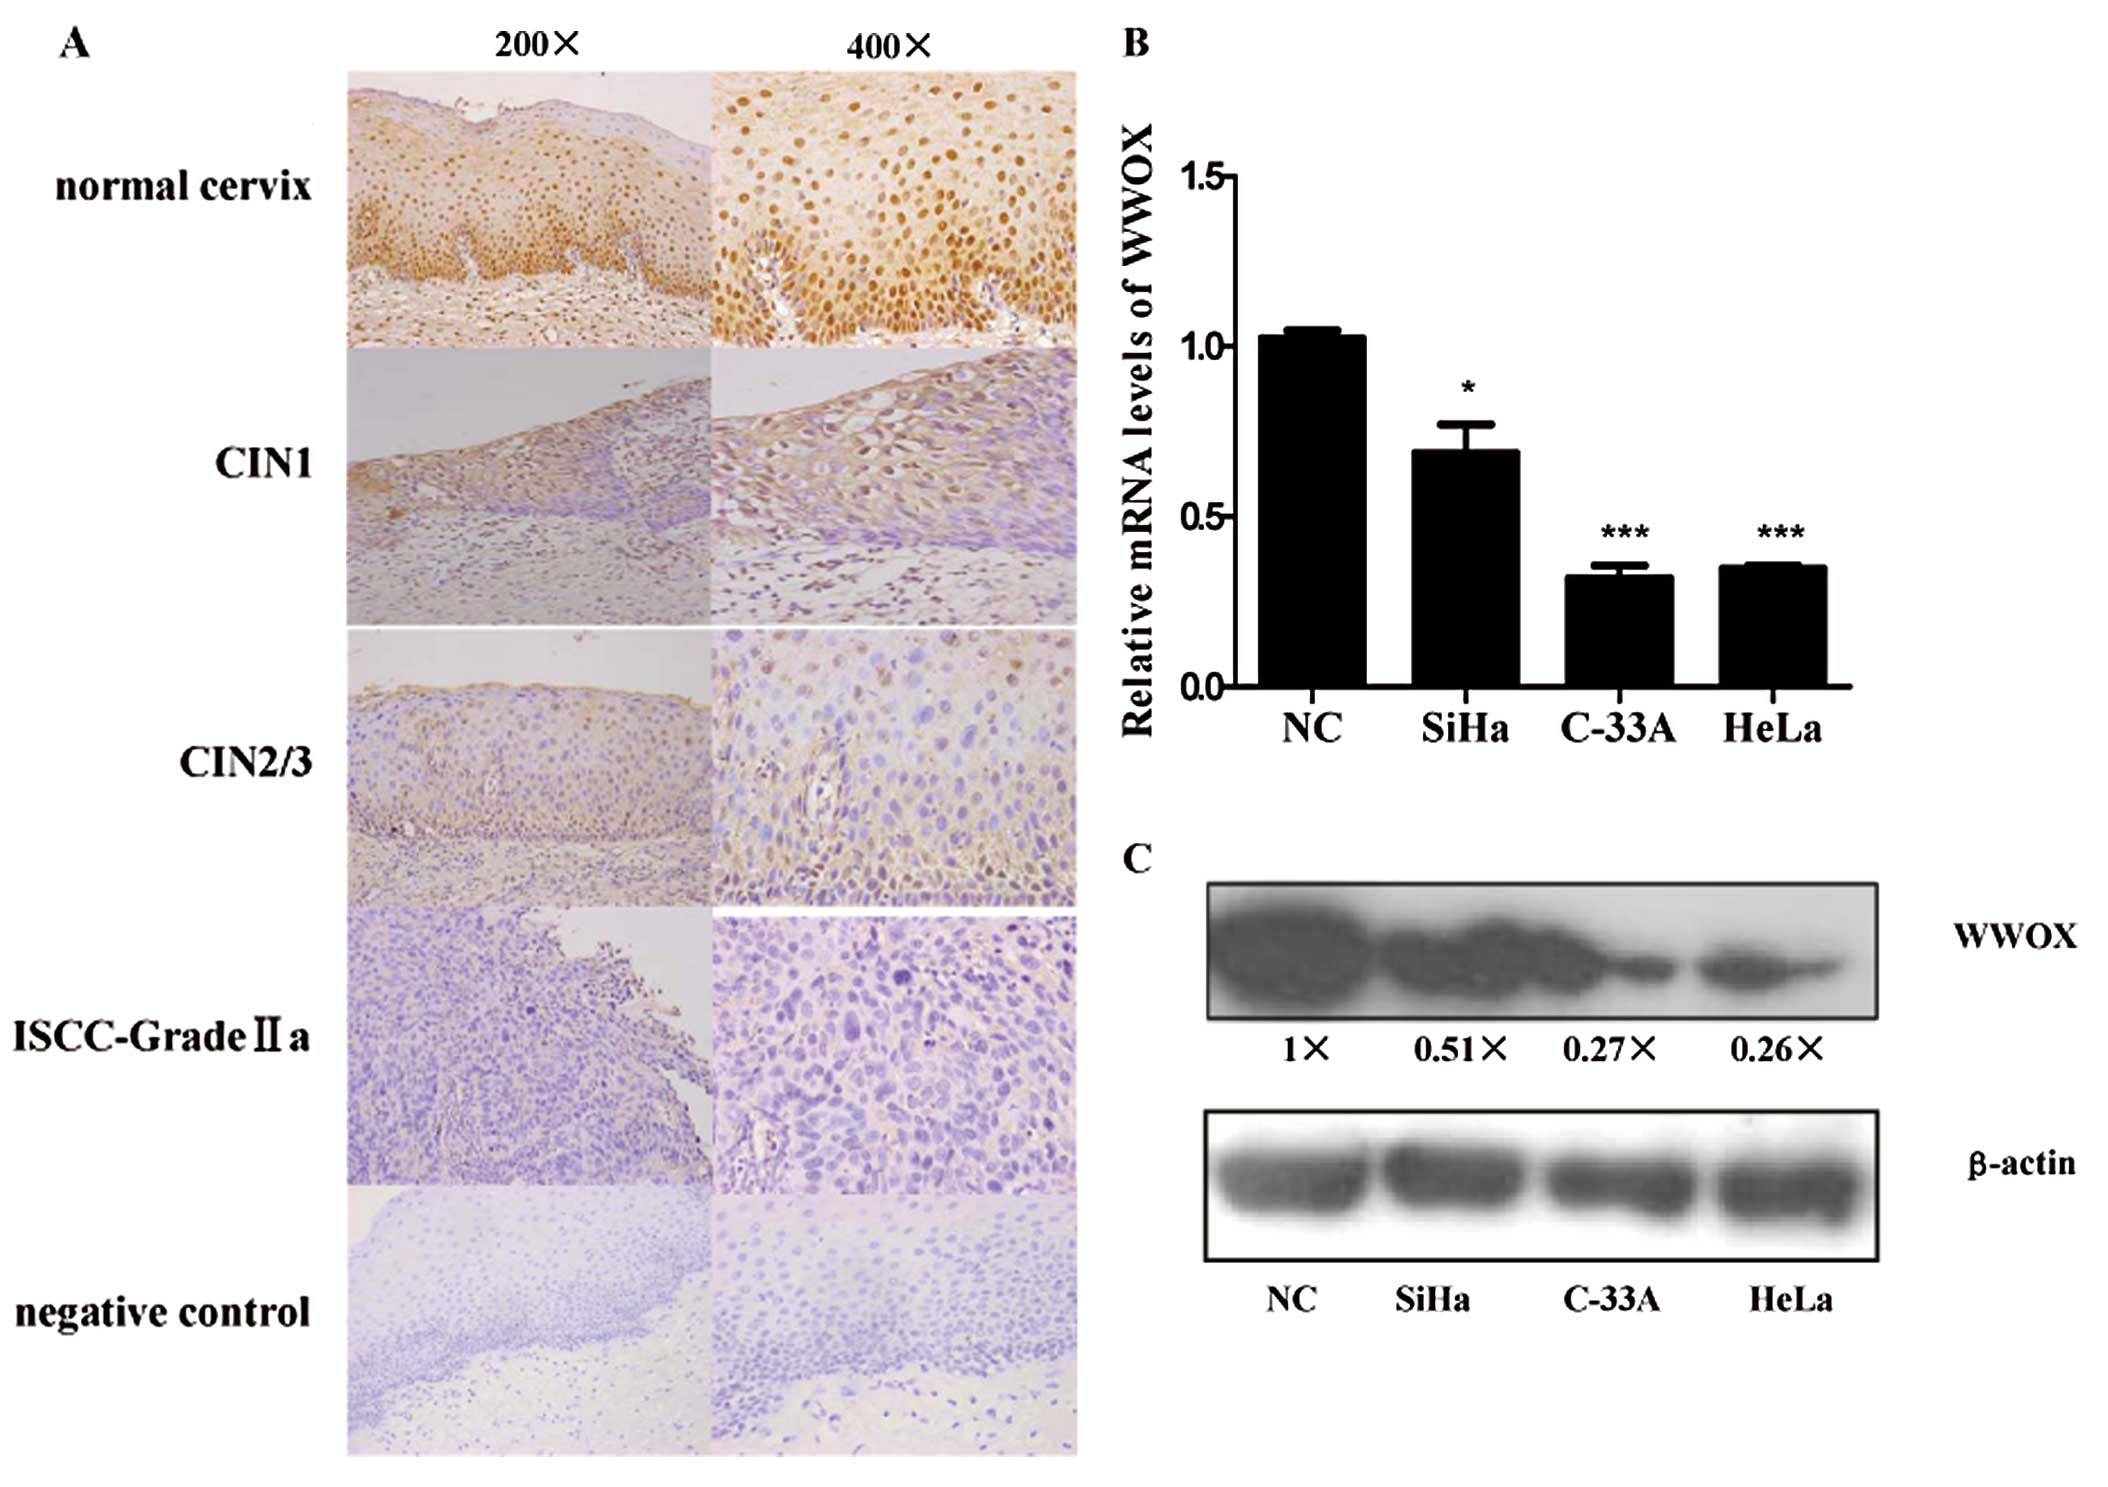 Wwox Induces Apoptosis And Inhibits Proliferation In Cervical Cancer